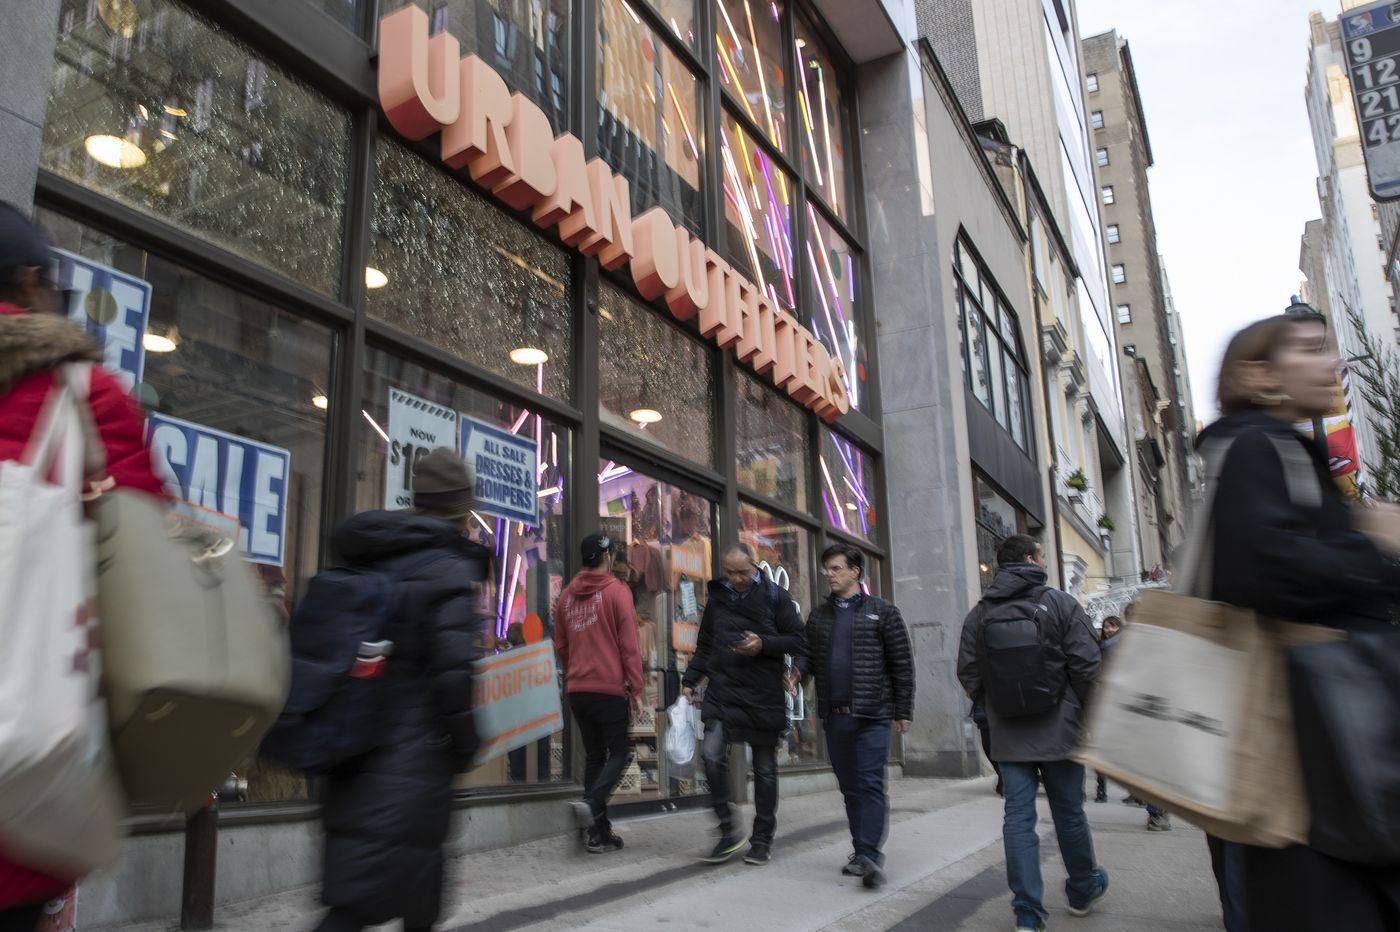 Employees at Urban Outfitters, State Farm and others fear coming to work during coronavirus